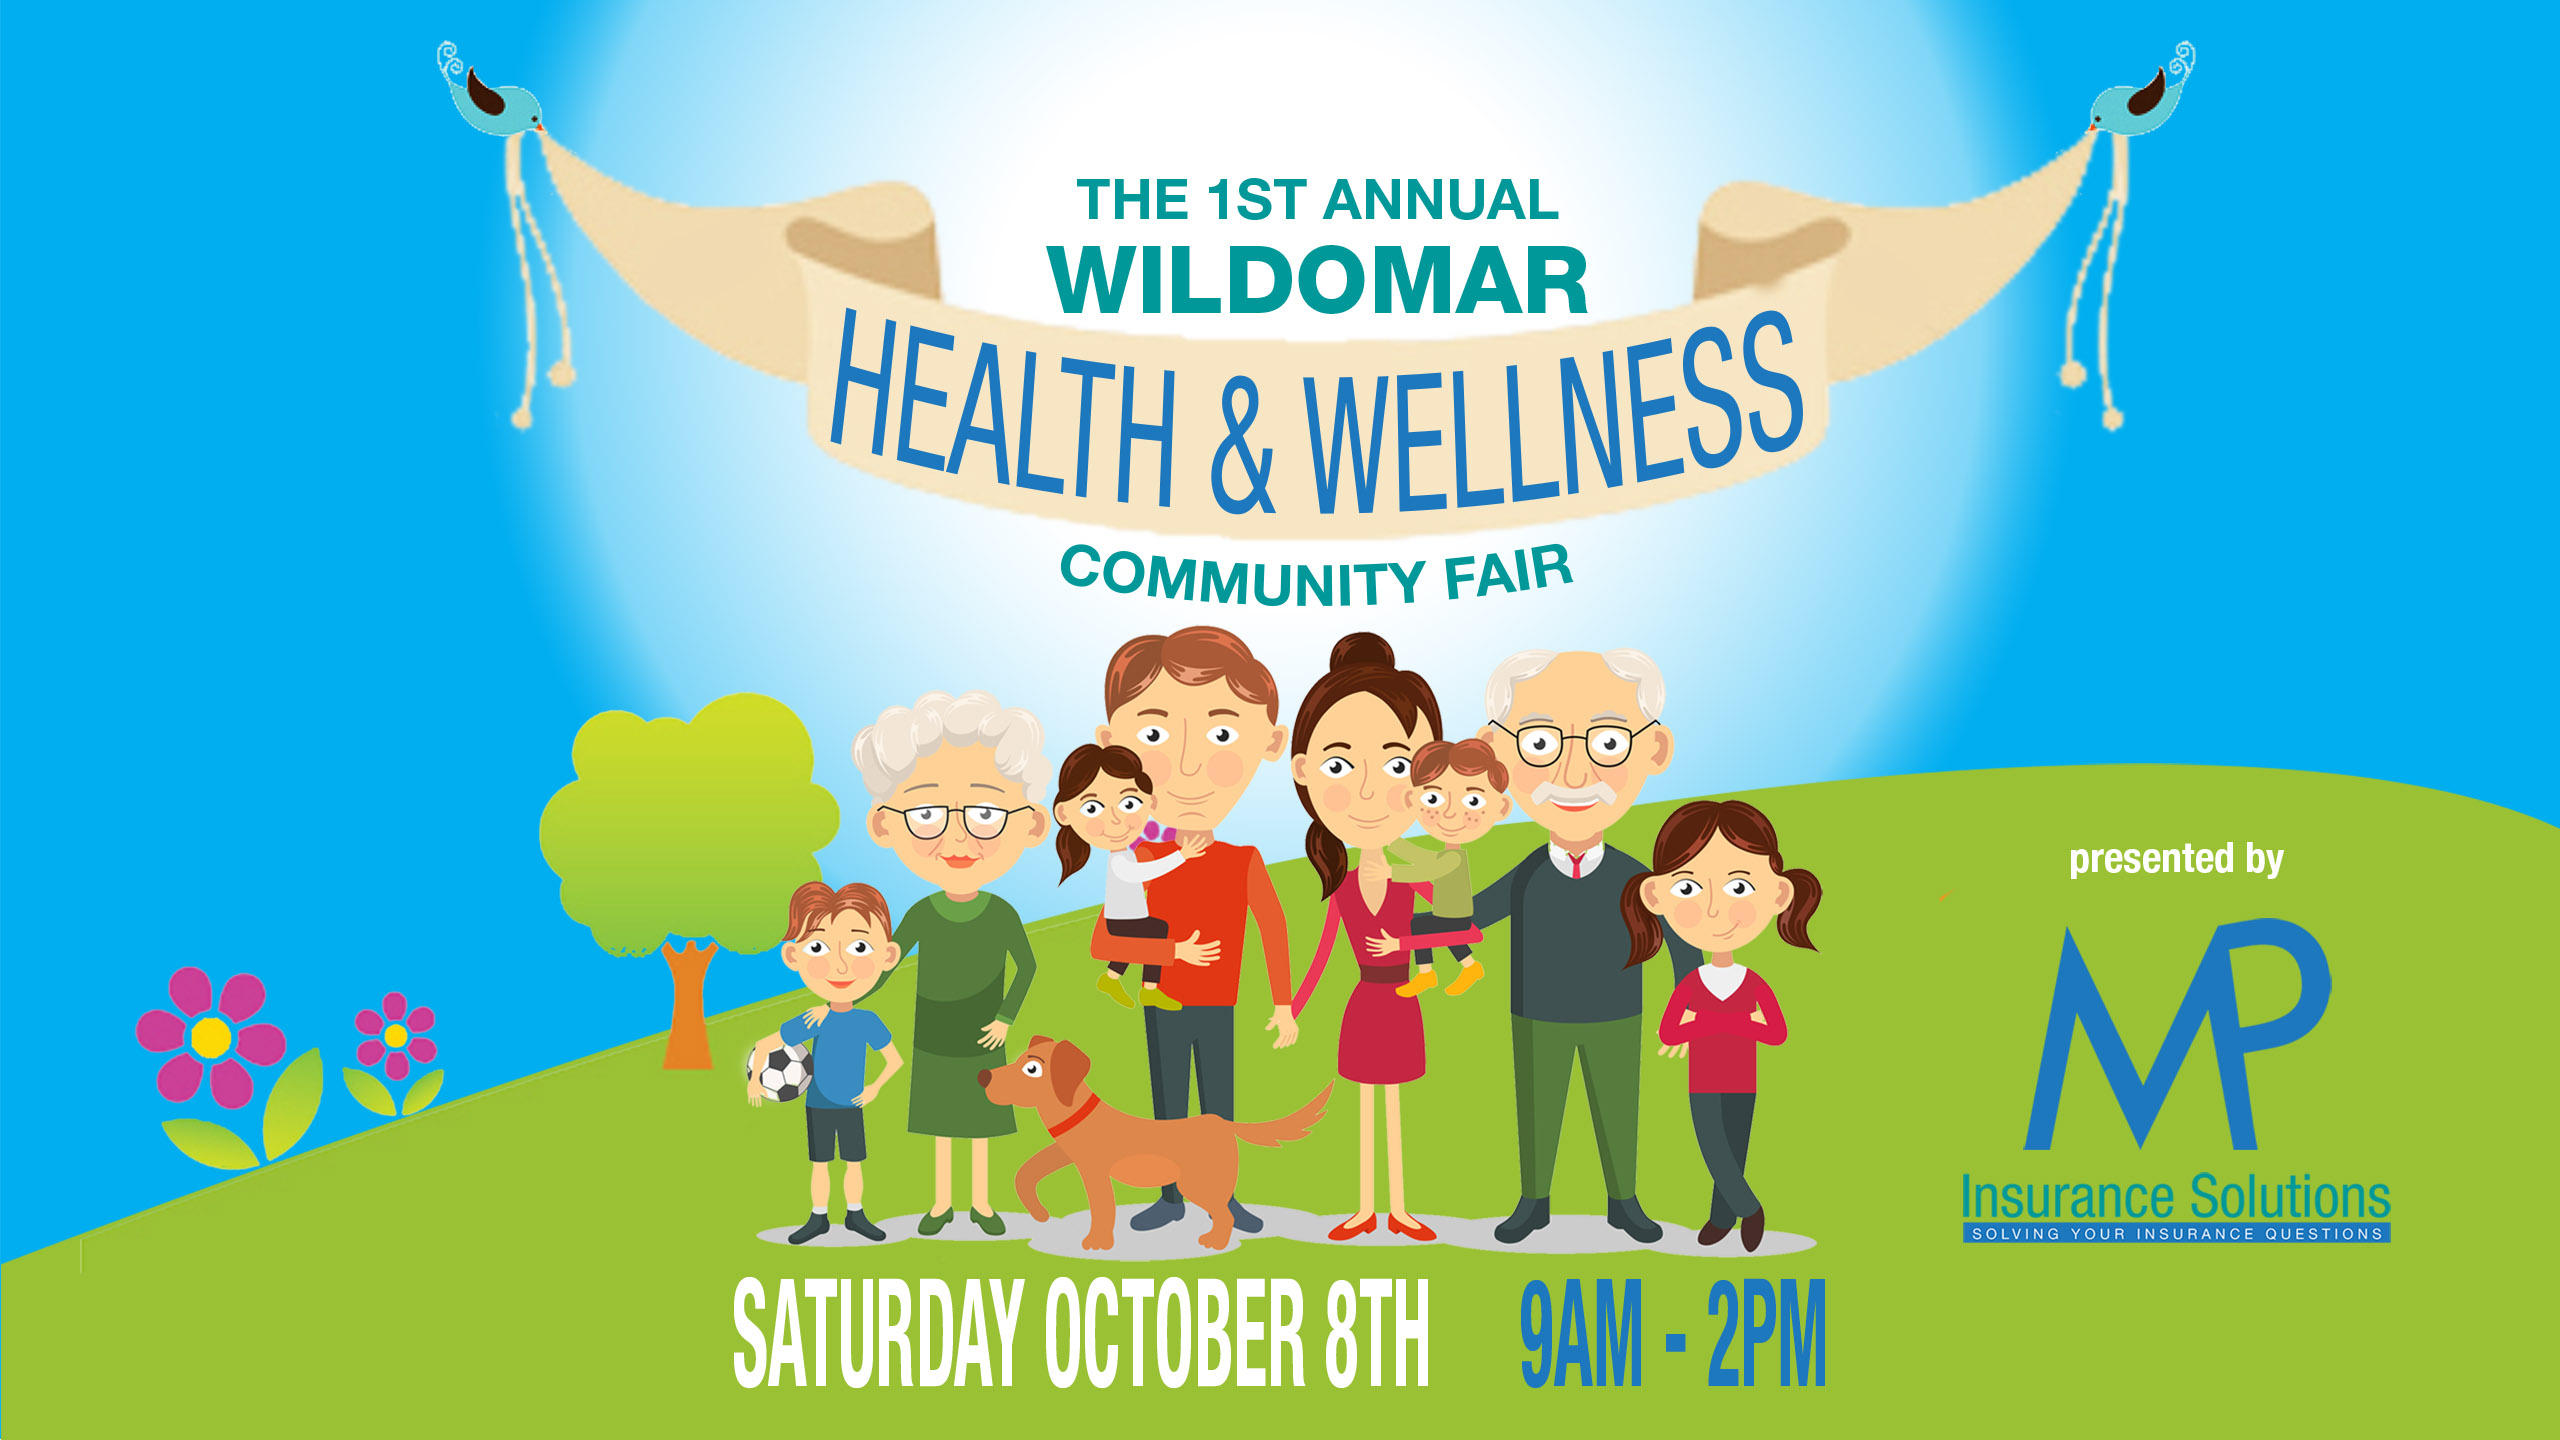 Health and Wellness Fair Wildomar